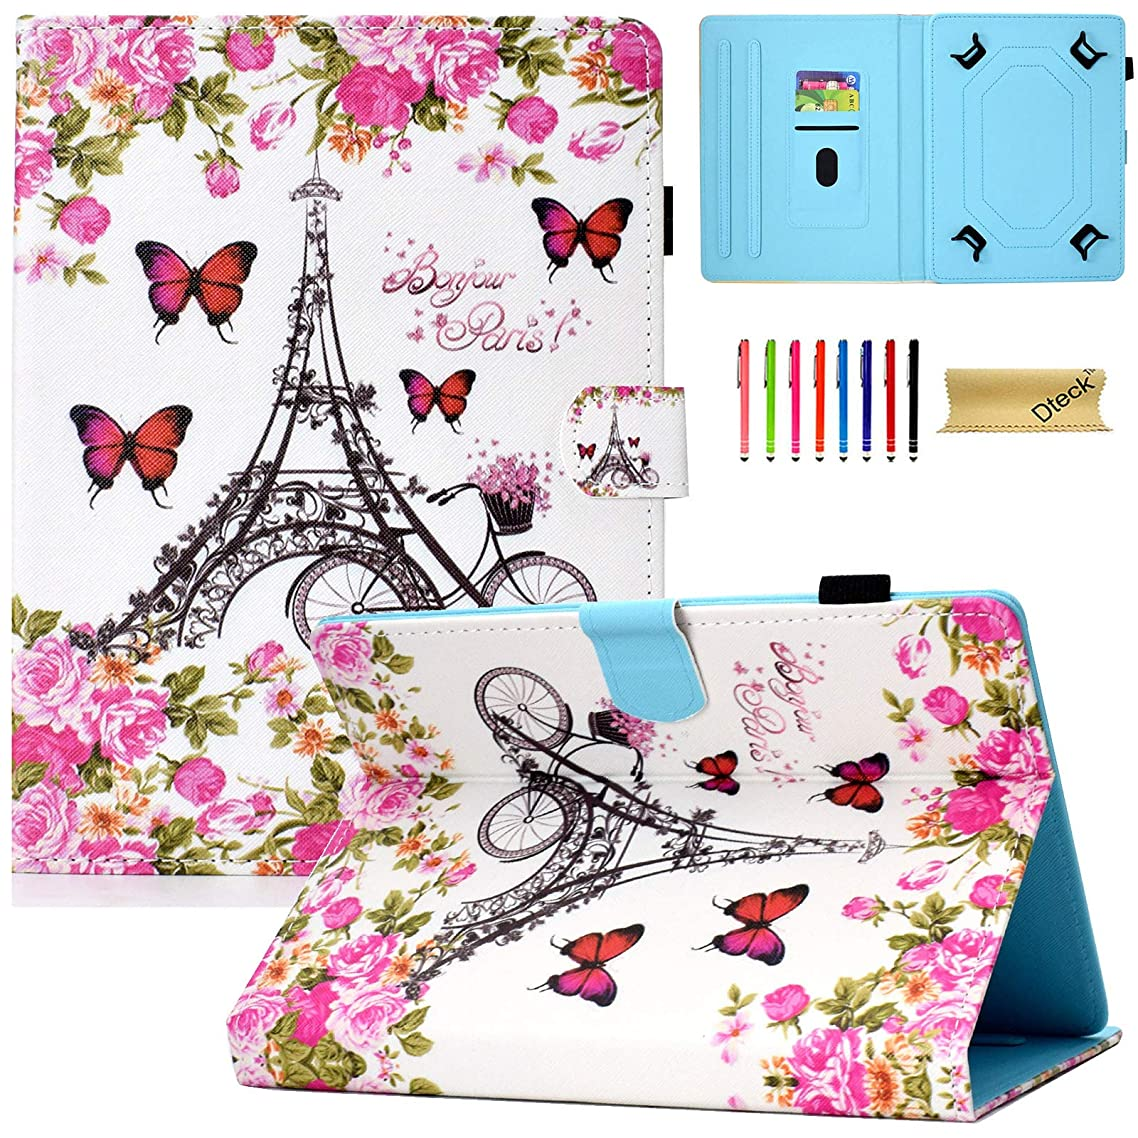 Dteck 6.5-7 Inch Universal Case with [Stylus Pen], Pretty Cute Flip Stand Case PU Leather Protective Pocket Holder Cover for Samsung/Kindle/Huawei/Lenovo/Nook 7.0 Inch Tablet-Flower Tower